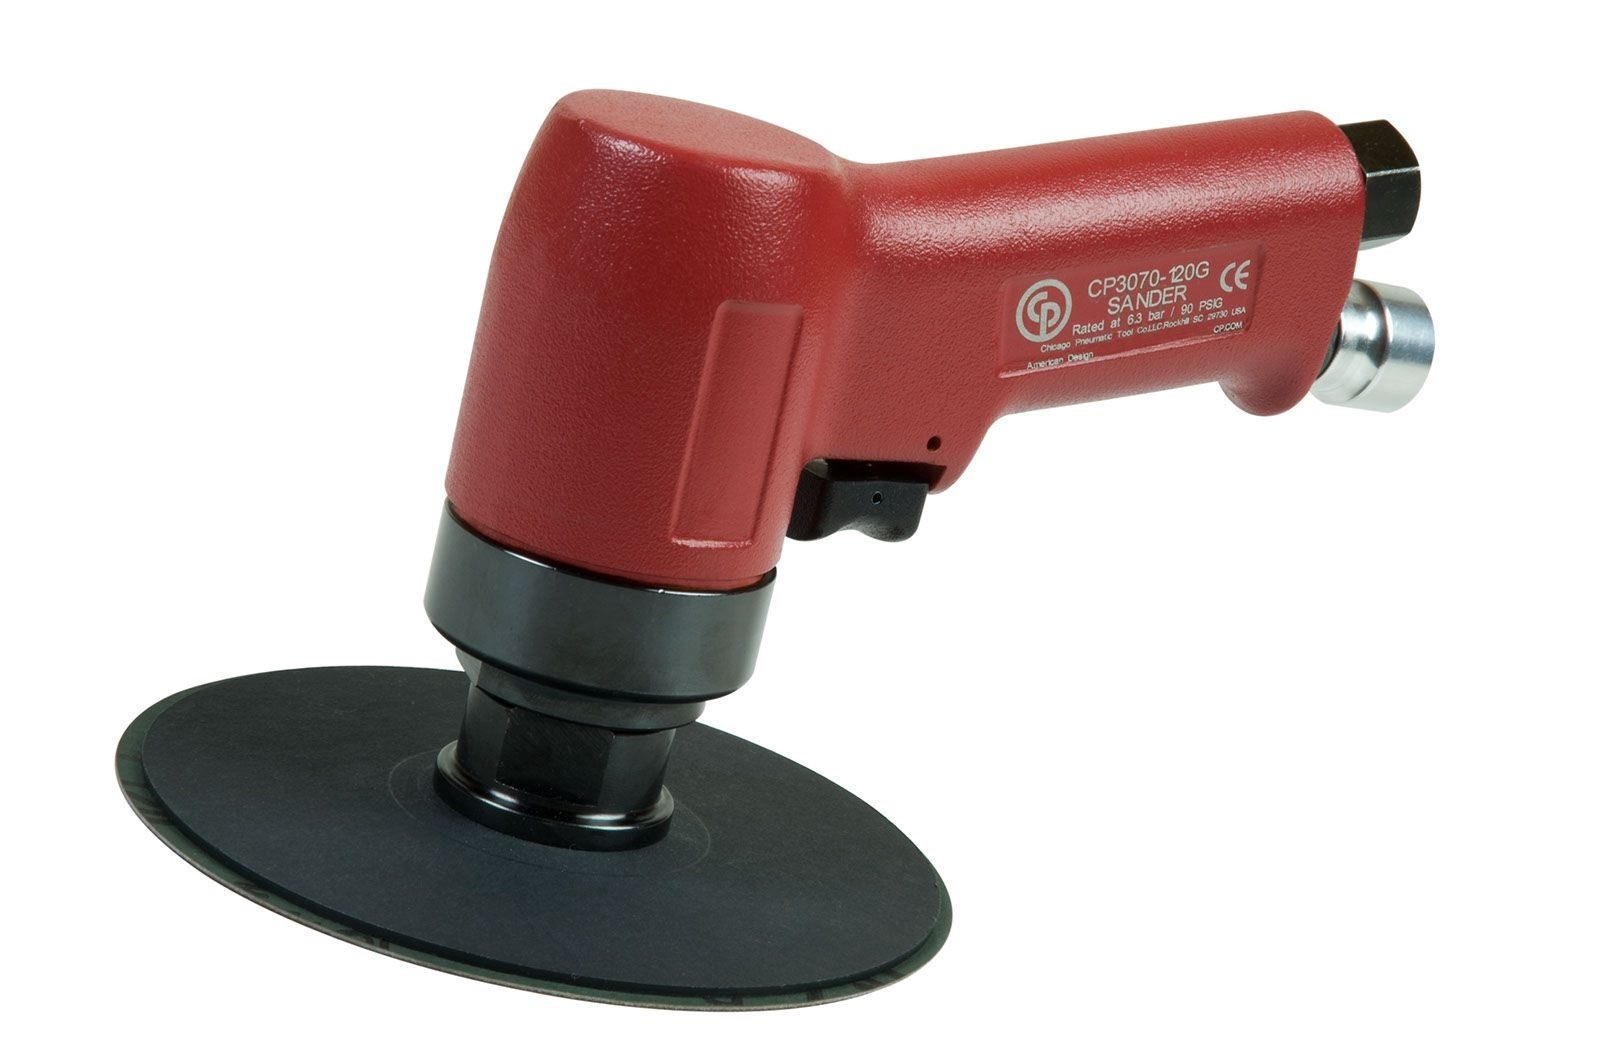 Chicago Pneumatic Pistol Grip Sanders